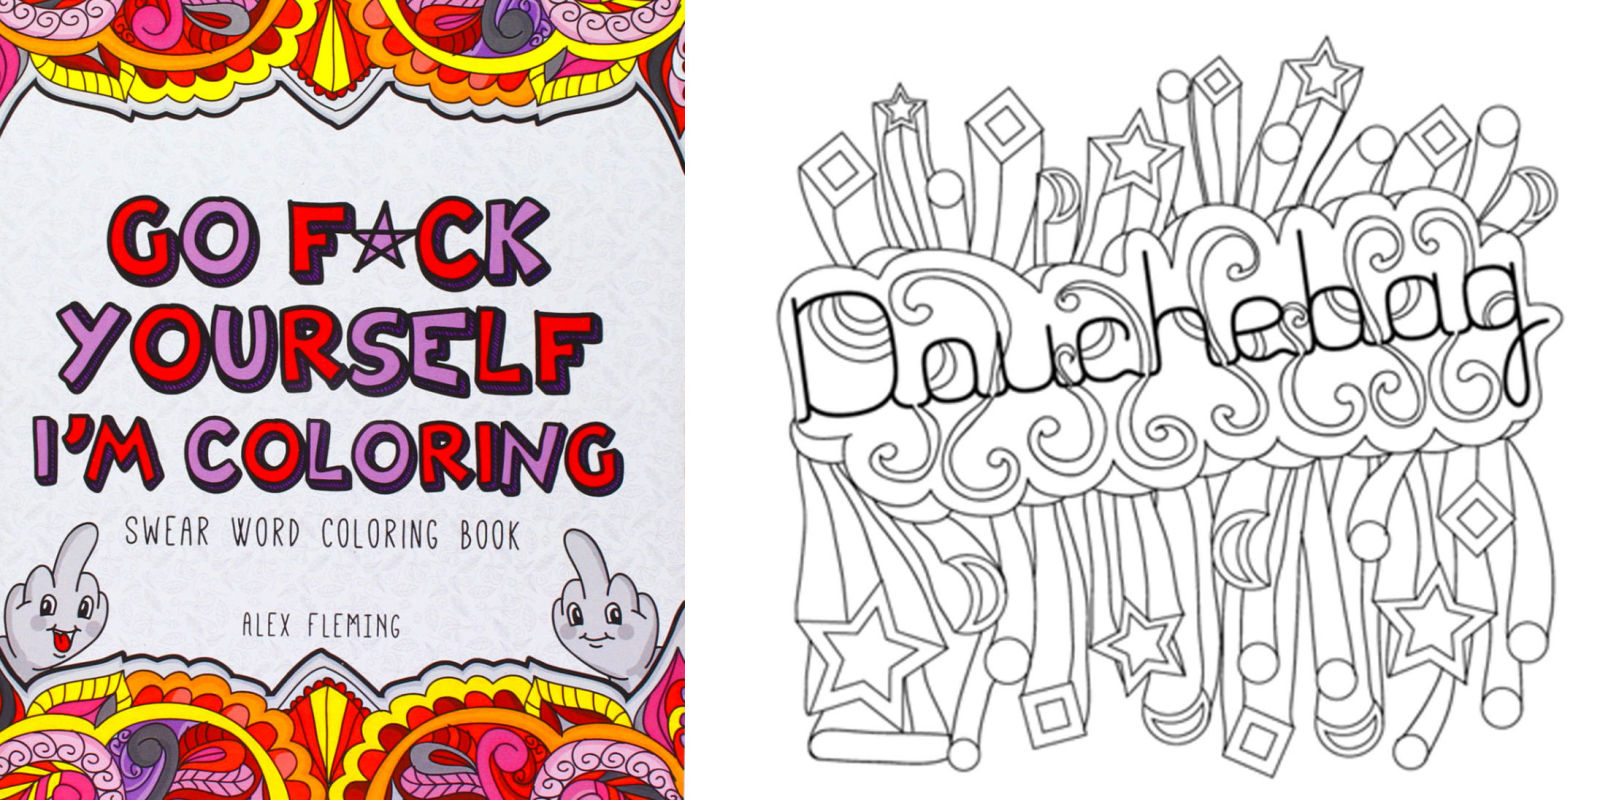 swear word color book coloring book with curse words